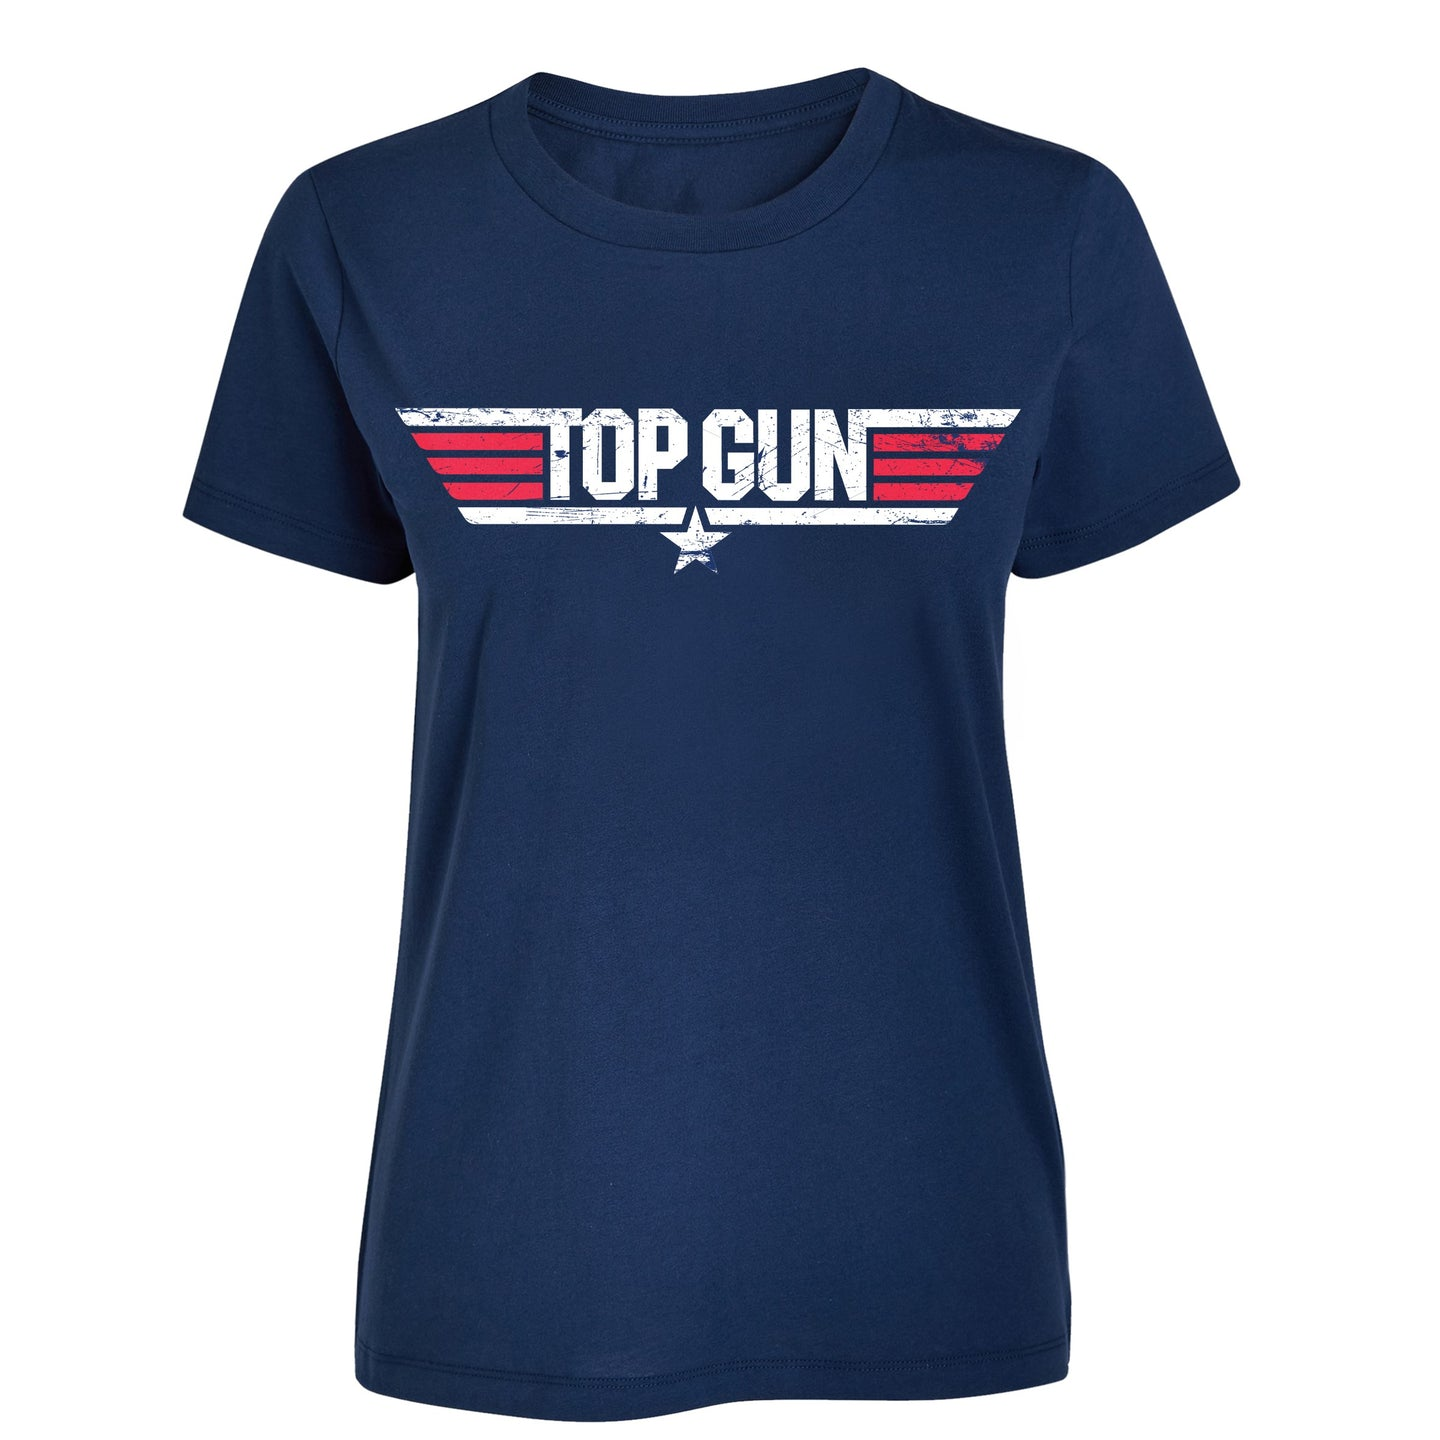 Top Gun Navy Womens Tee